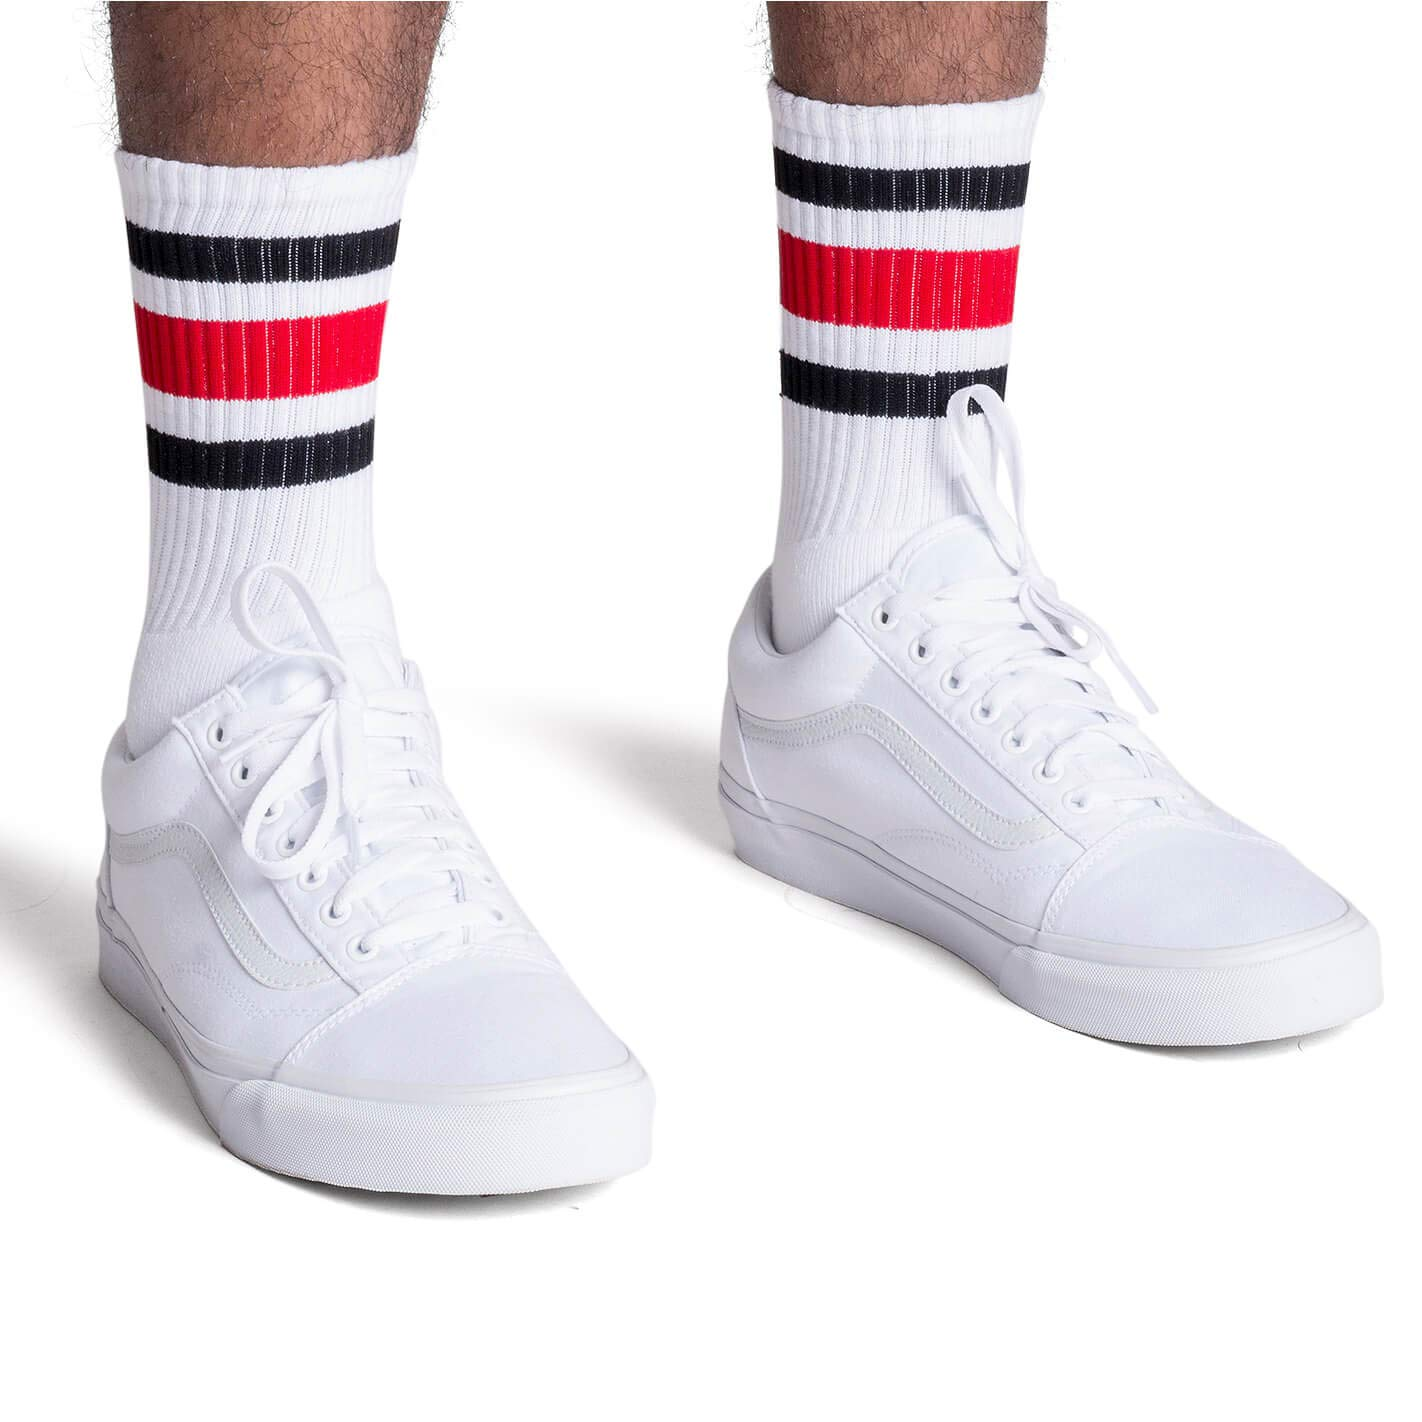 Socco Socks Unisex White Triple Striped Black//Red Crew Tube Socks 6-9 Small//Medium